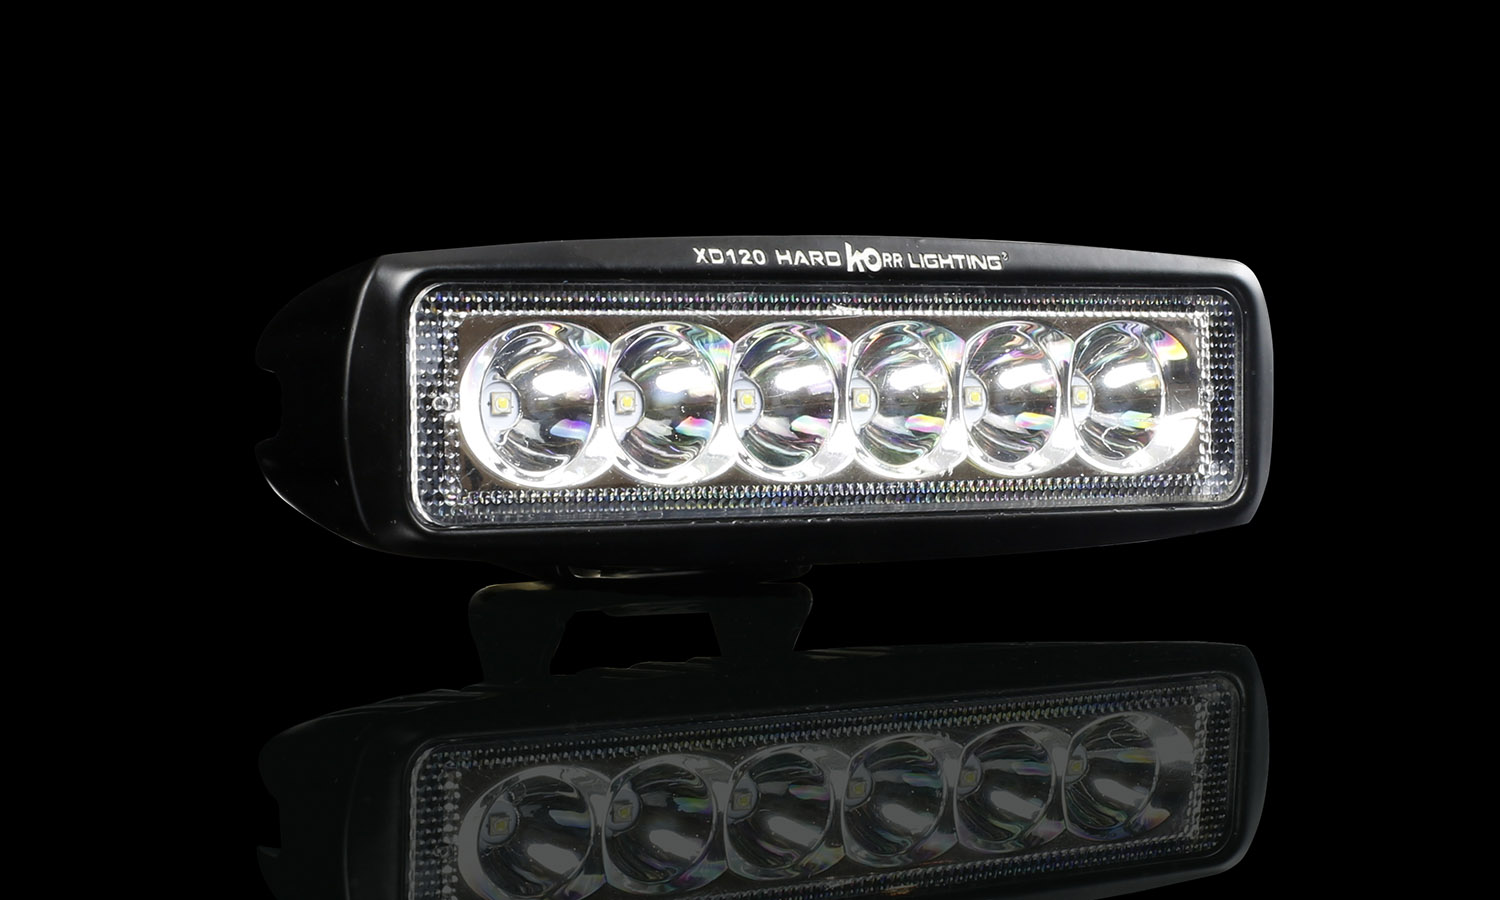 Led Light Bars Hard Korr Nz Leg Wiring Harness Include Switch Kit Support 120w Xd Series 18w Slimline Driving Xd120